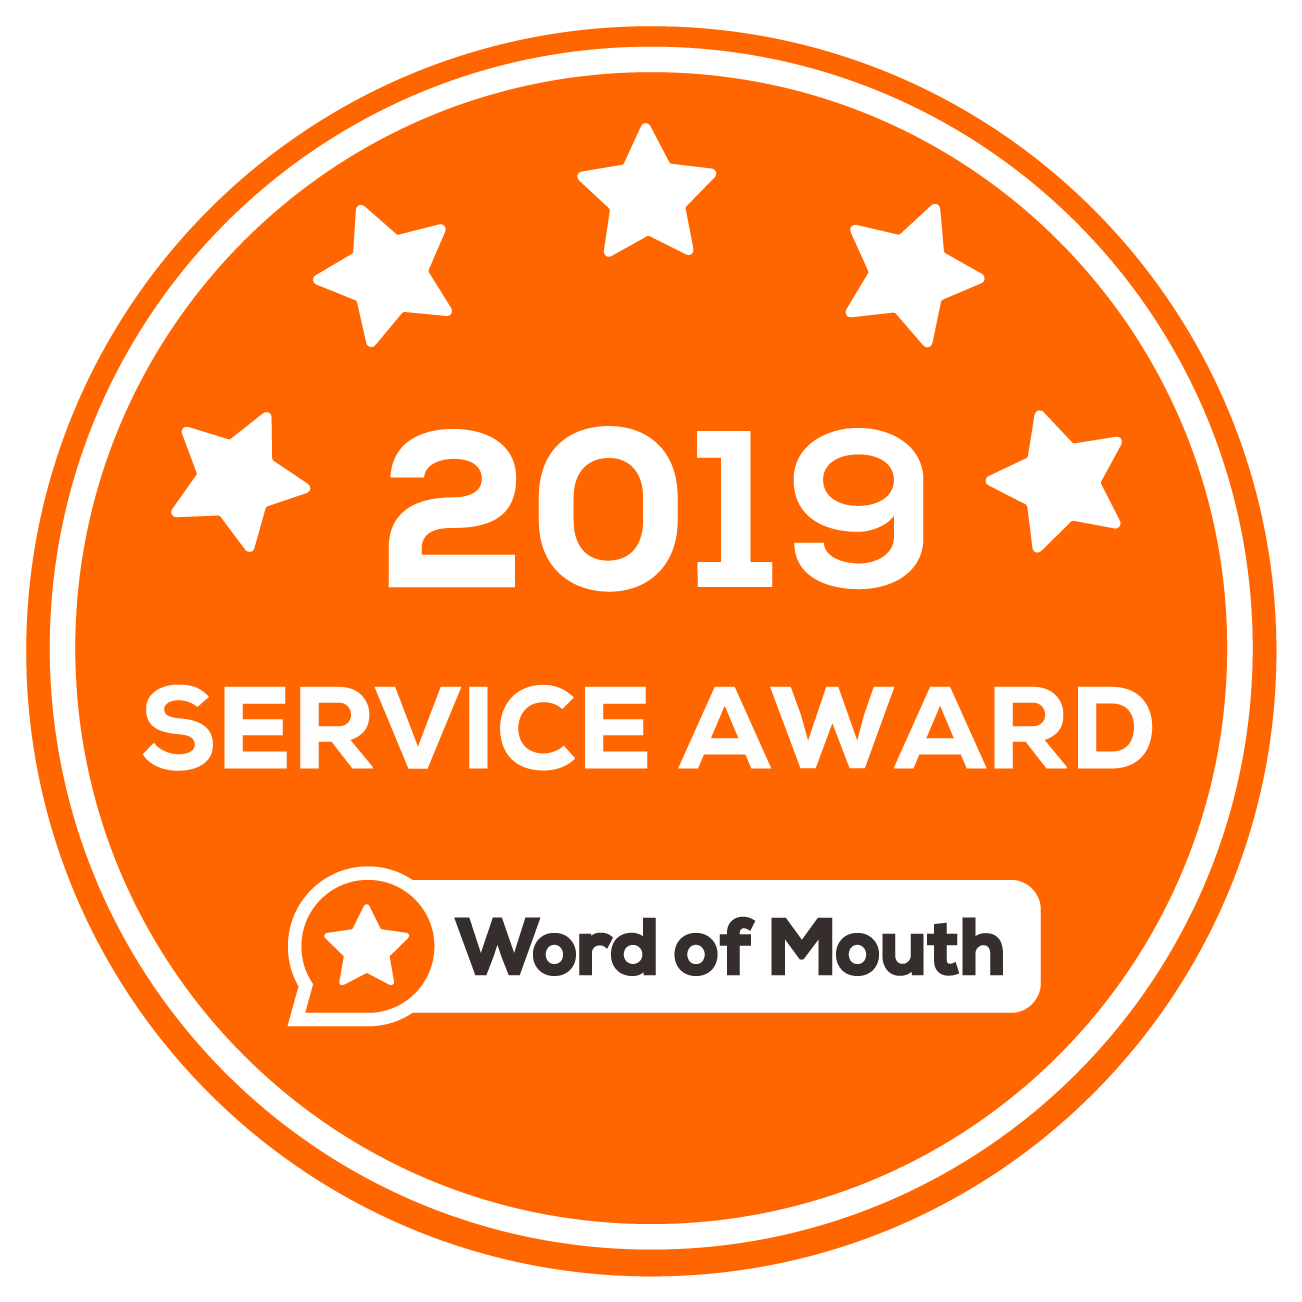 Word of Mouth 2019 Service Award